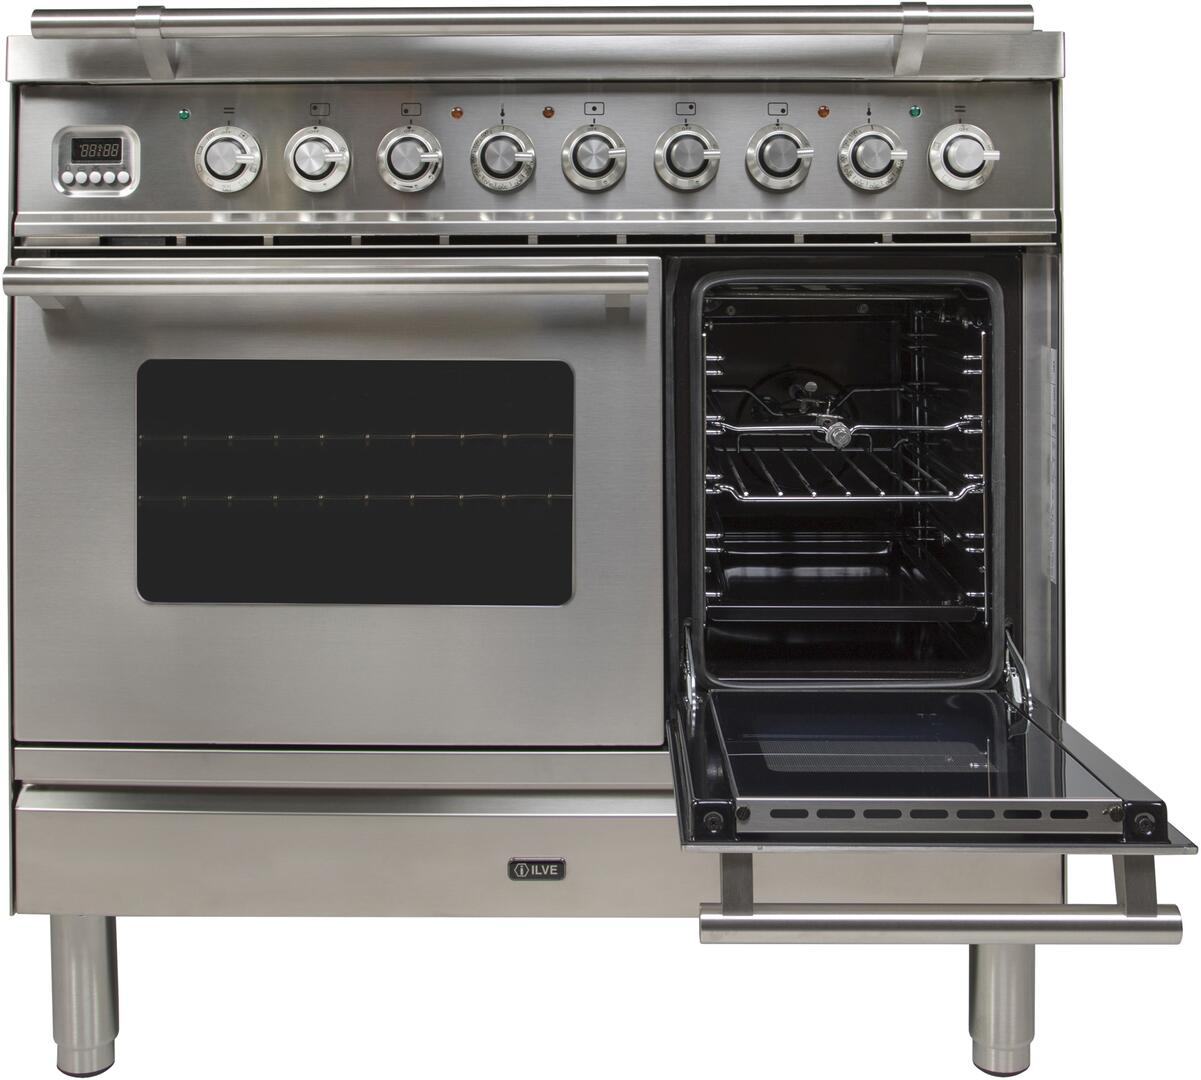 Ilve Professional Plus UPDW90FDMPI Freestanding Dual Fuel Range Stainless Steel, Small Oven Door Opened